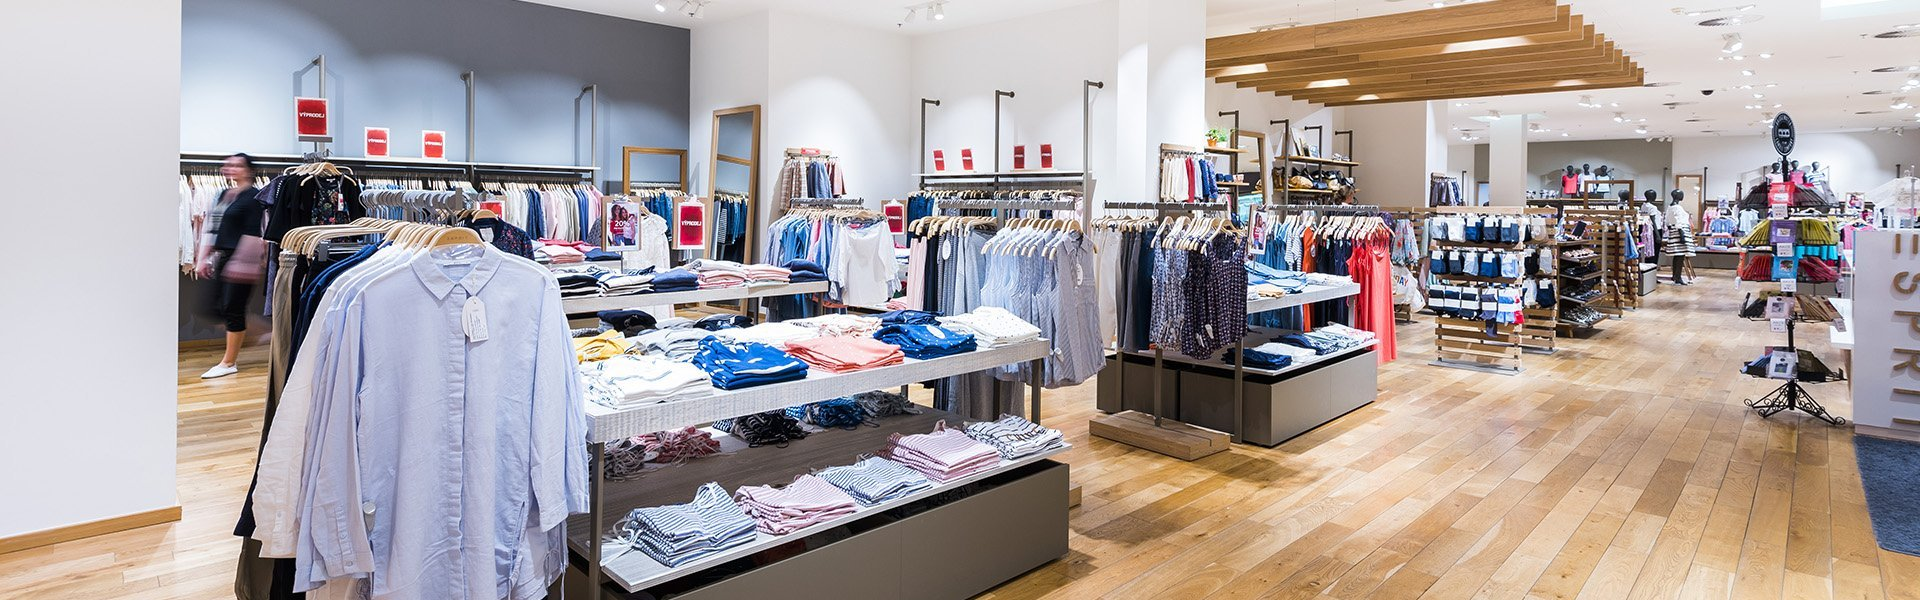 Esprit - fashion and accessories stores